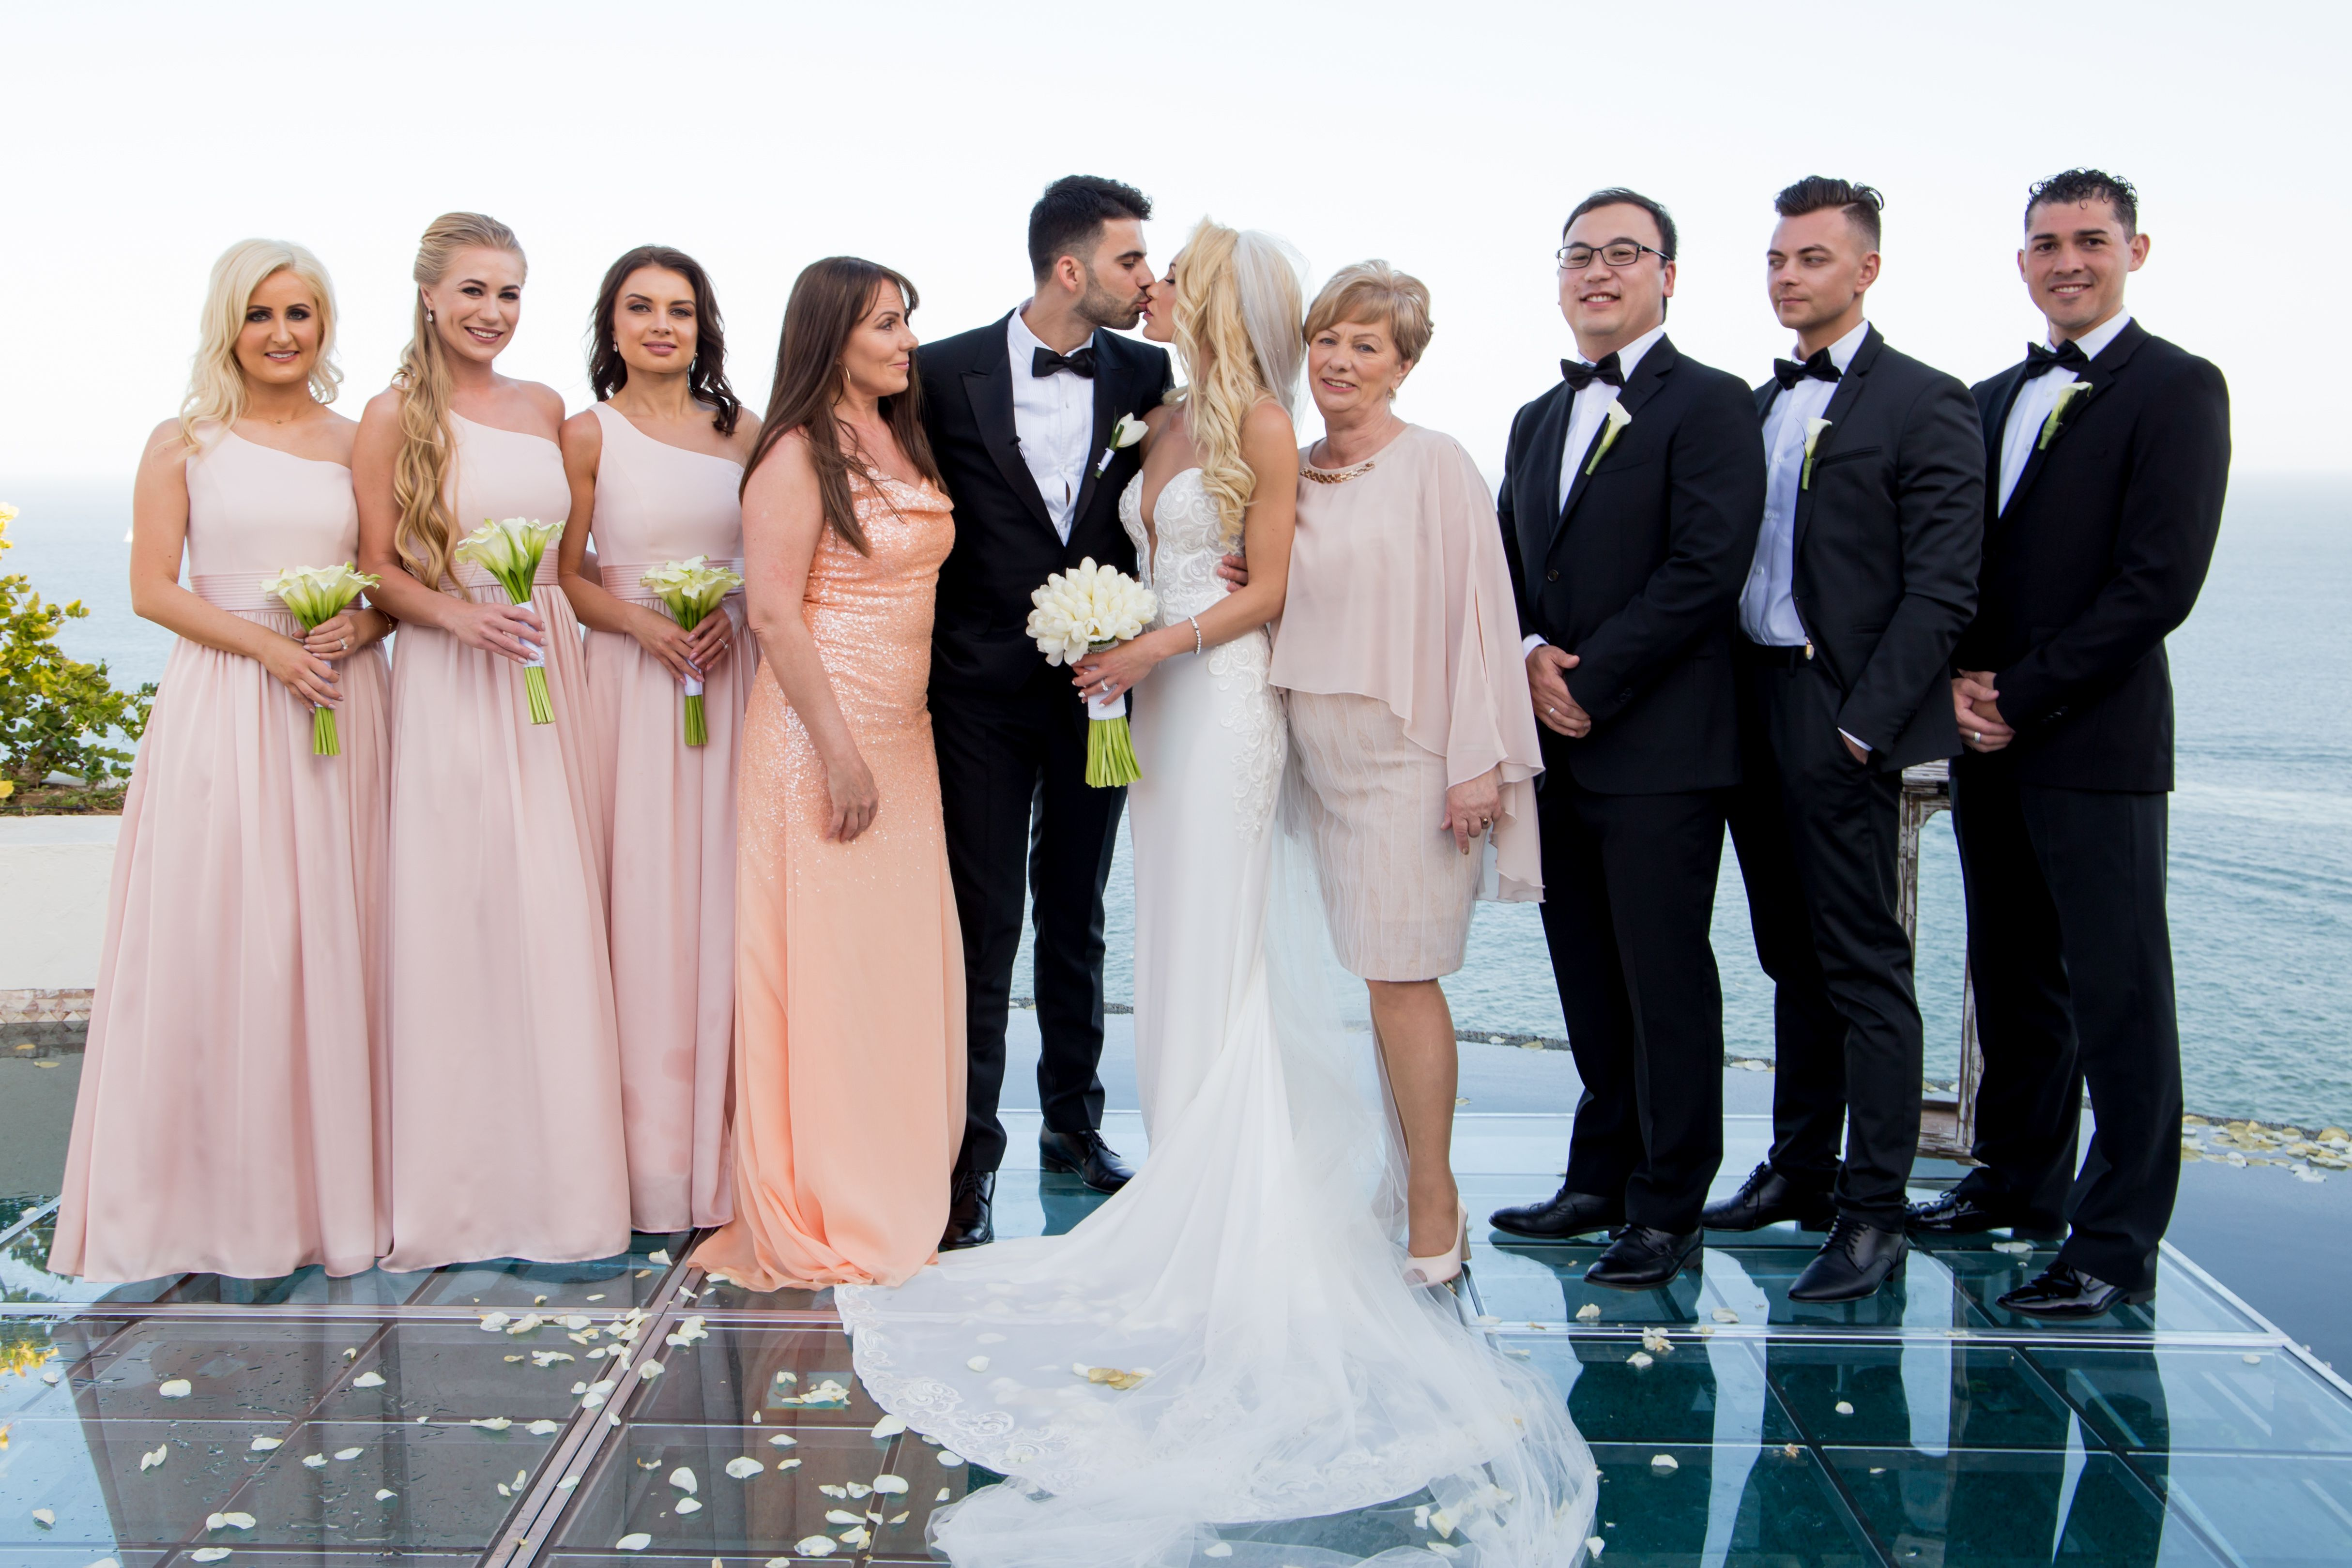 Bridal Party photo session after Wedding Ceremony at Villa la Roca Pedregal Los Cabos